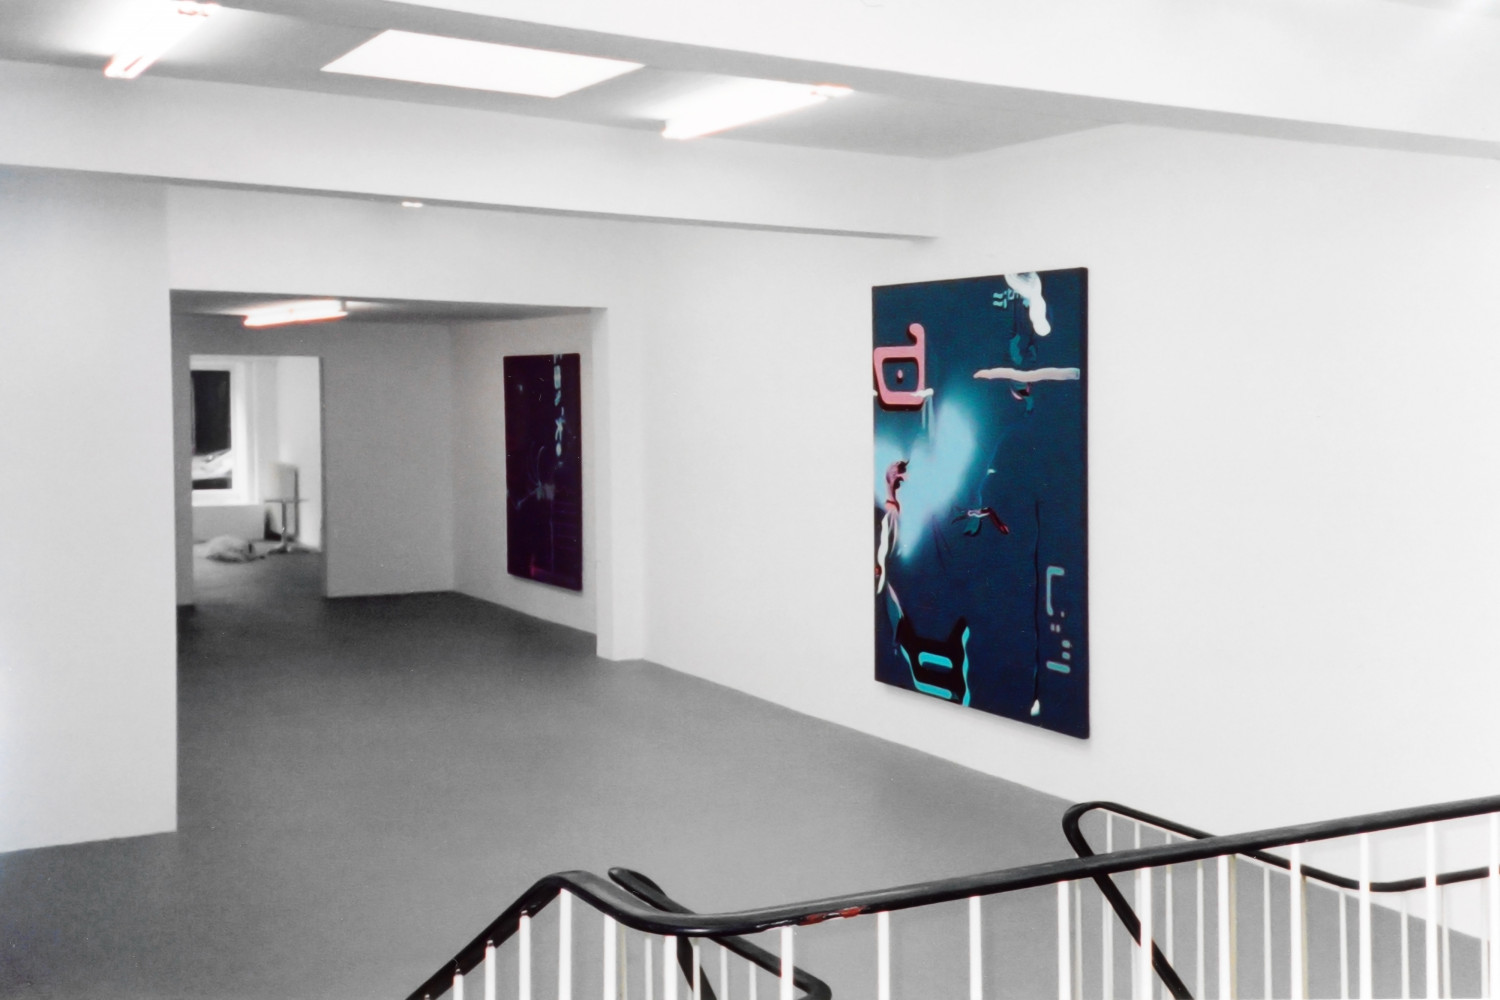 Fiona Rae, 'Recent paintings', Installation view, 2000